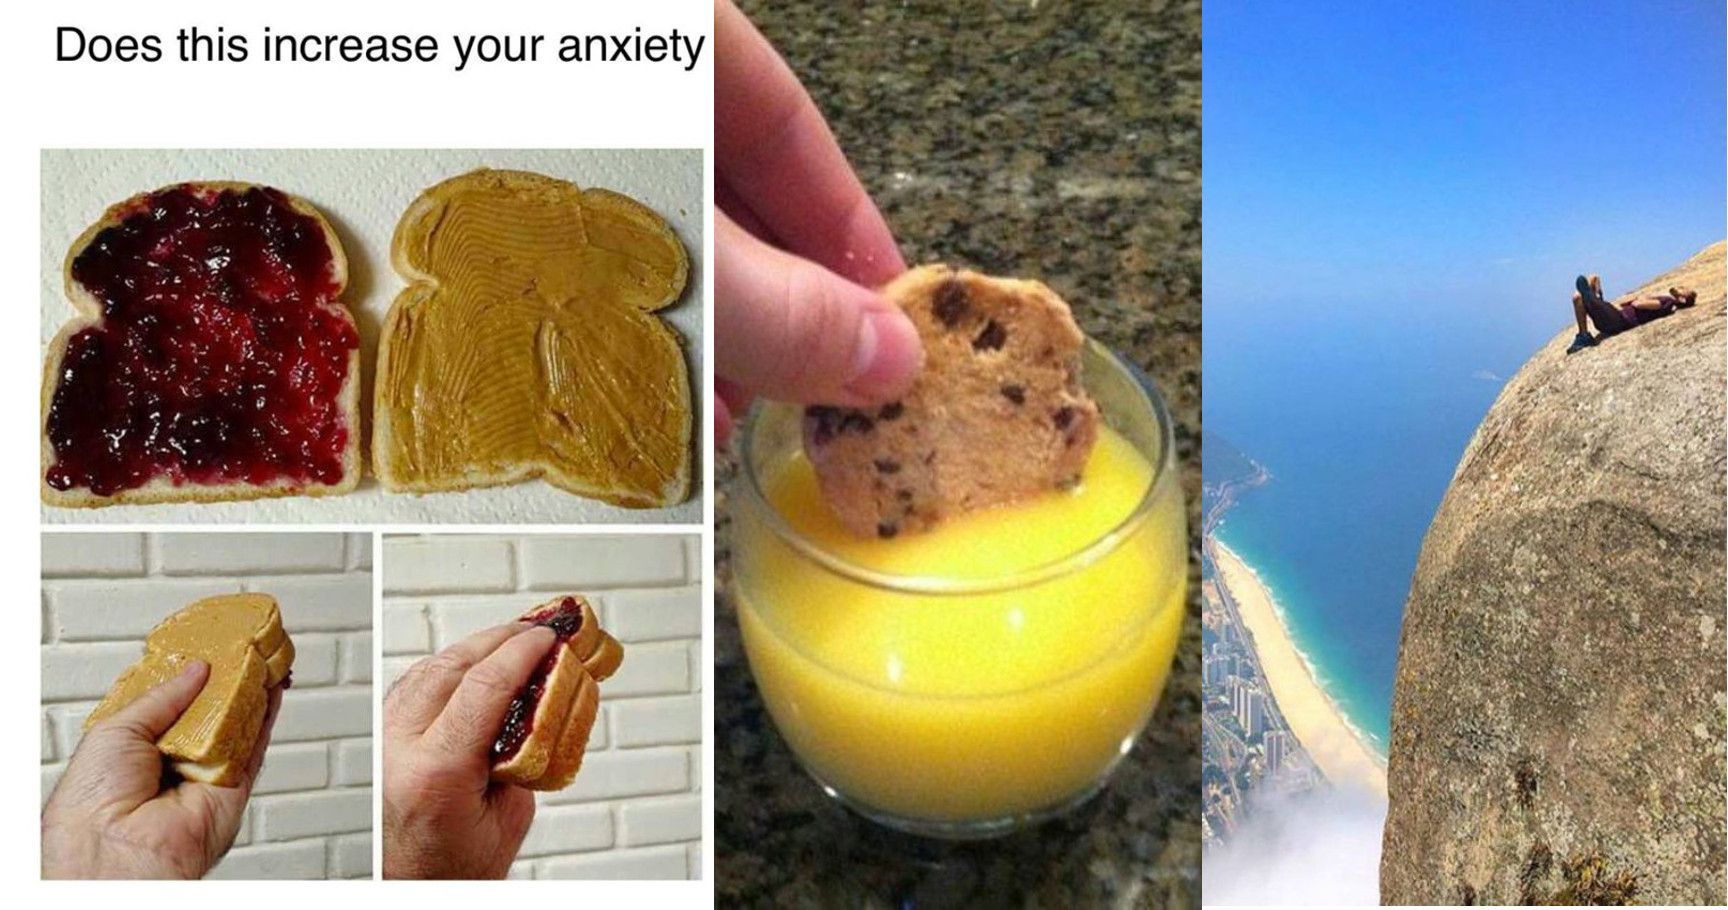 15 Insanely Stressful Pictures That Will Increase Your Anxiety Levels Right Now